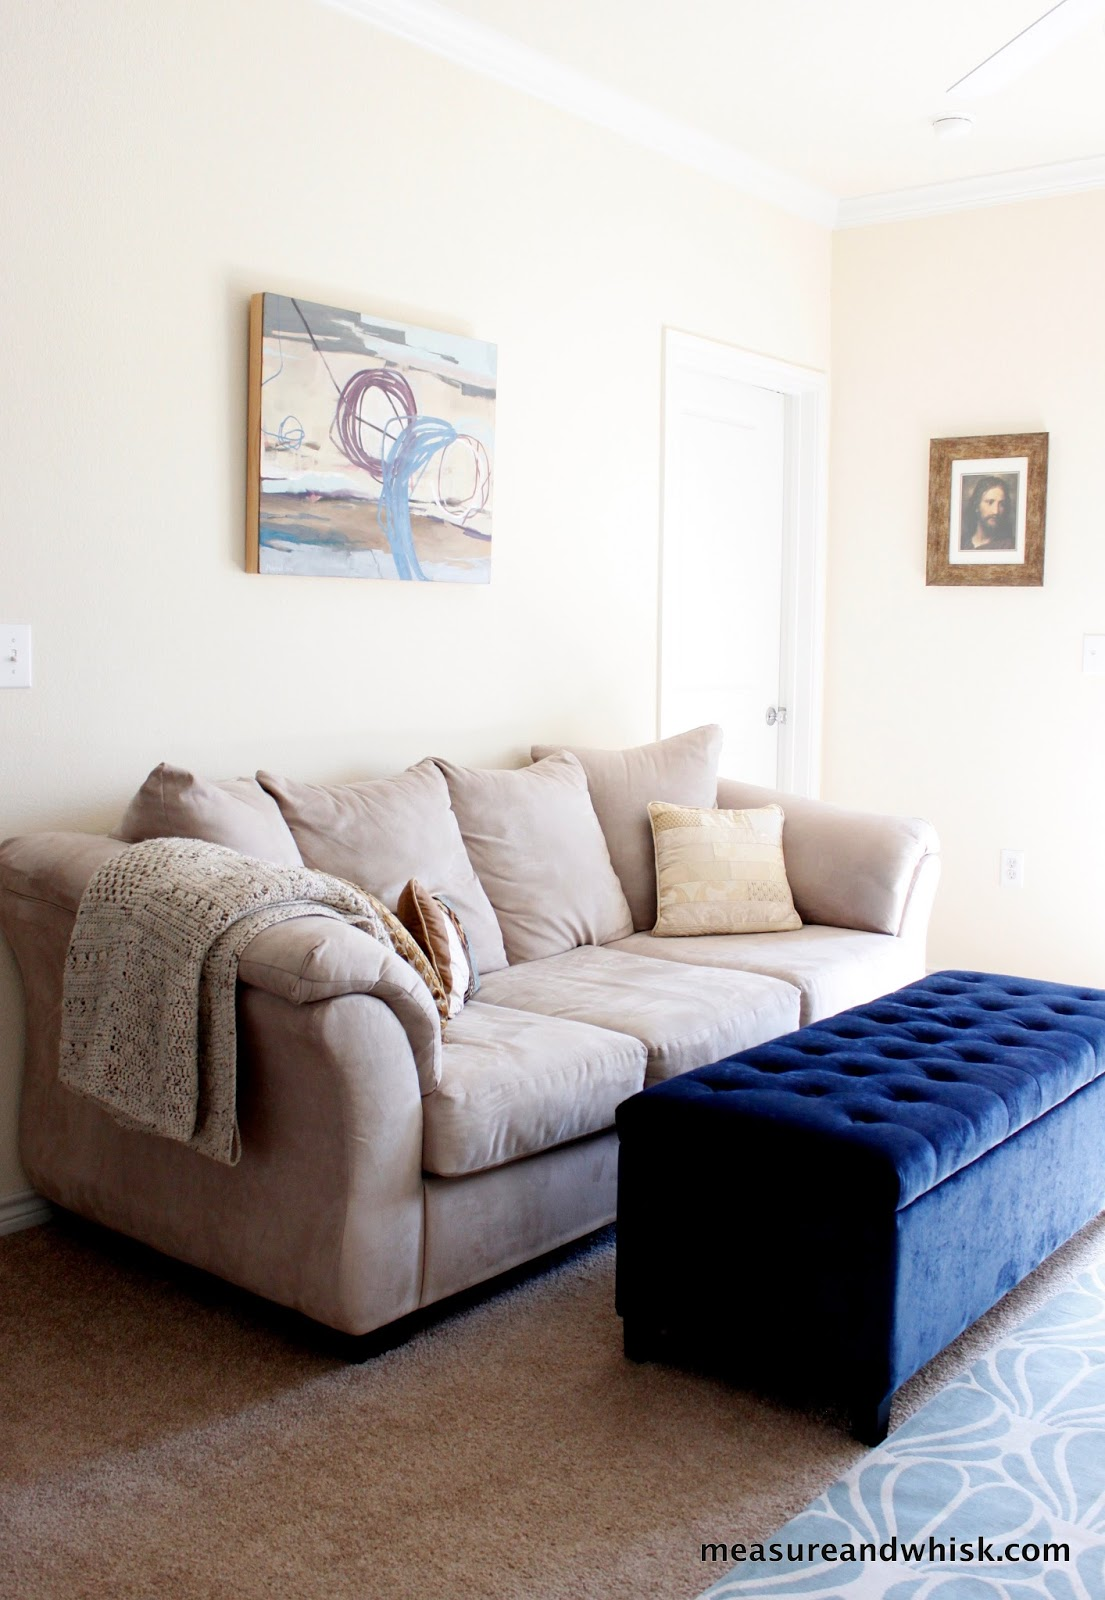 Minimalist Living: Making a small space work for you | Measure ...